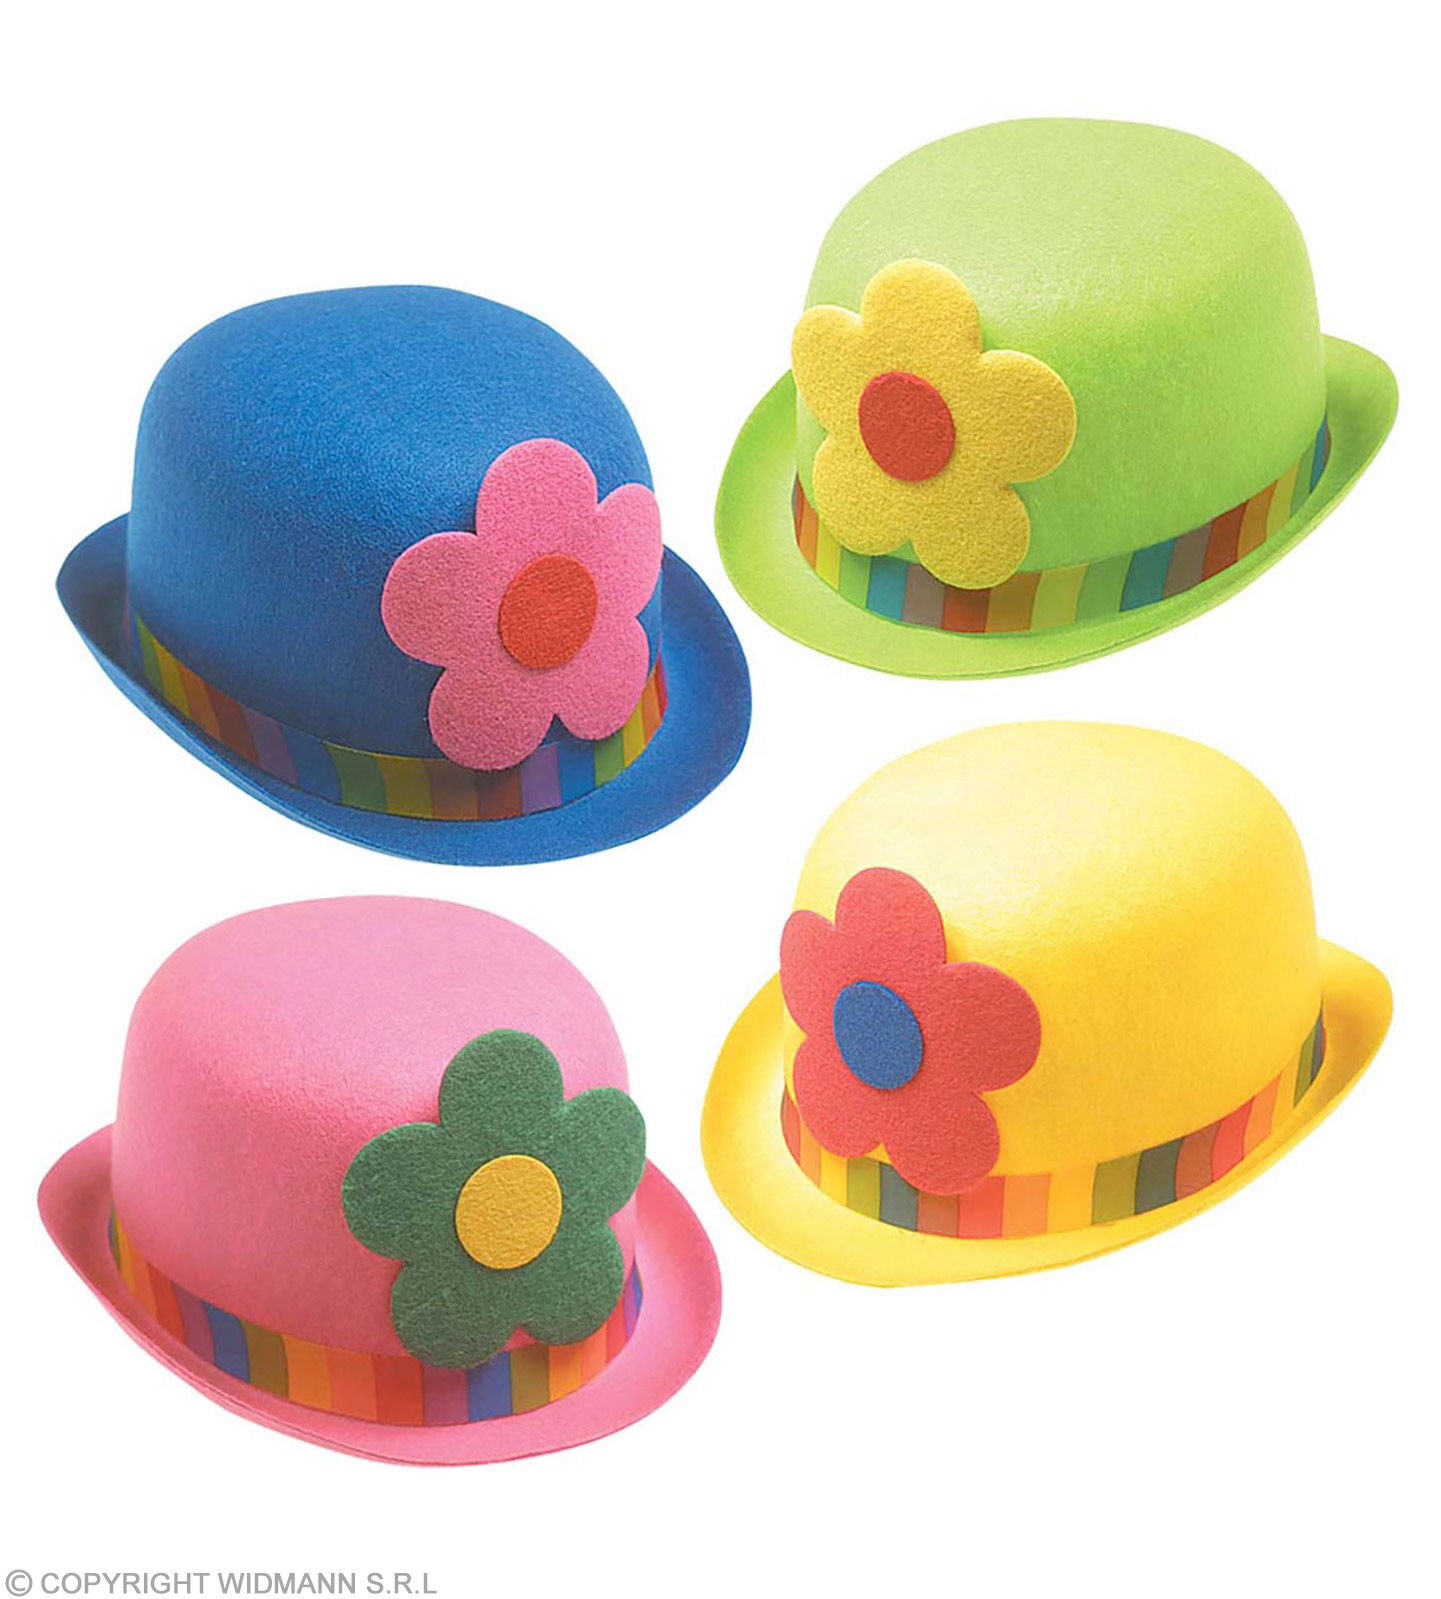 Clown Bowler Hat Felt W Flowers - Fancy Dress (Clowns)